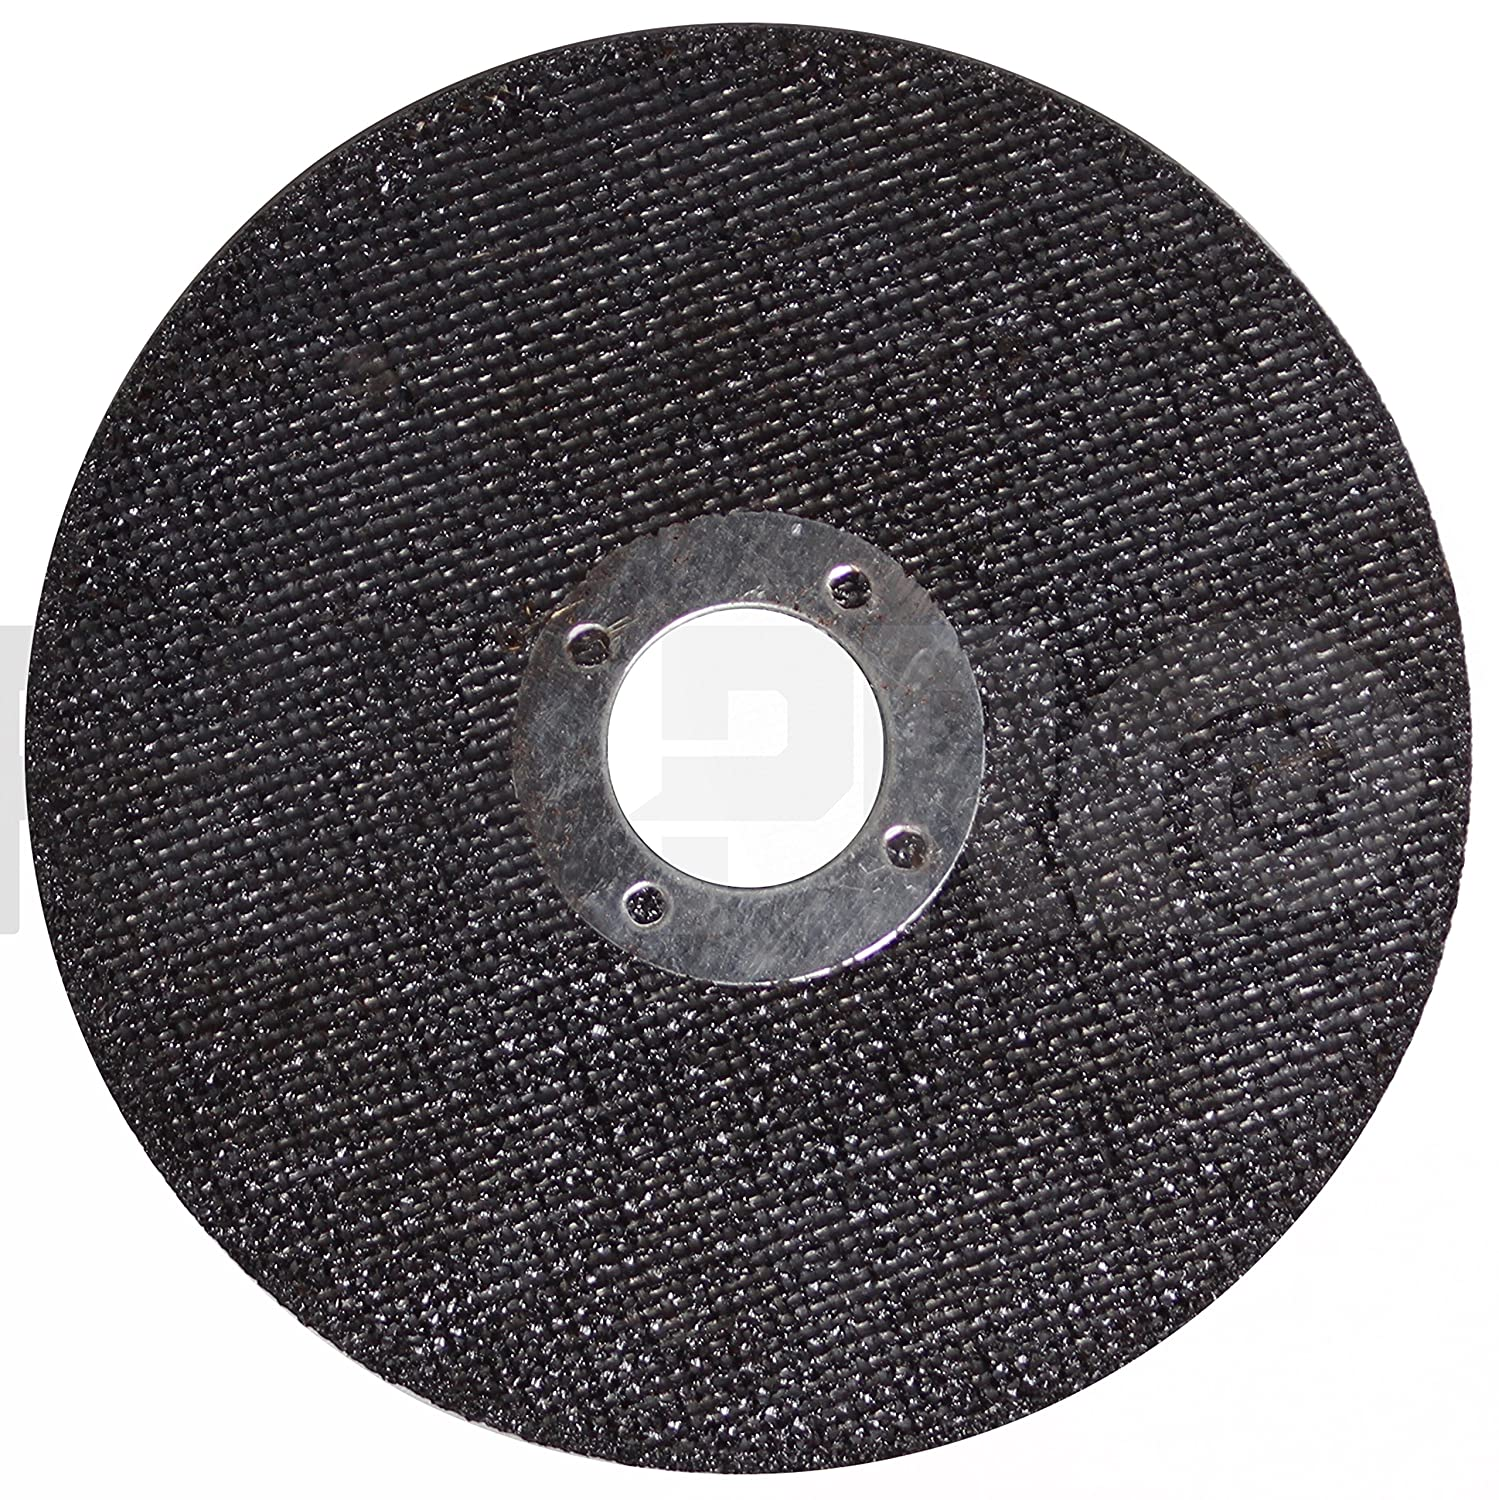 10 Pack . Ram-Pro 4-1//2 Inch Metal Cut-Off Wheel Blades Sanding and Trimming Ferrous Metal /& Steel Abrasive Arbor Grinder Disc Set Ideal for Cutting Grooving